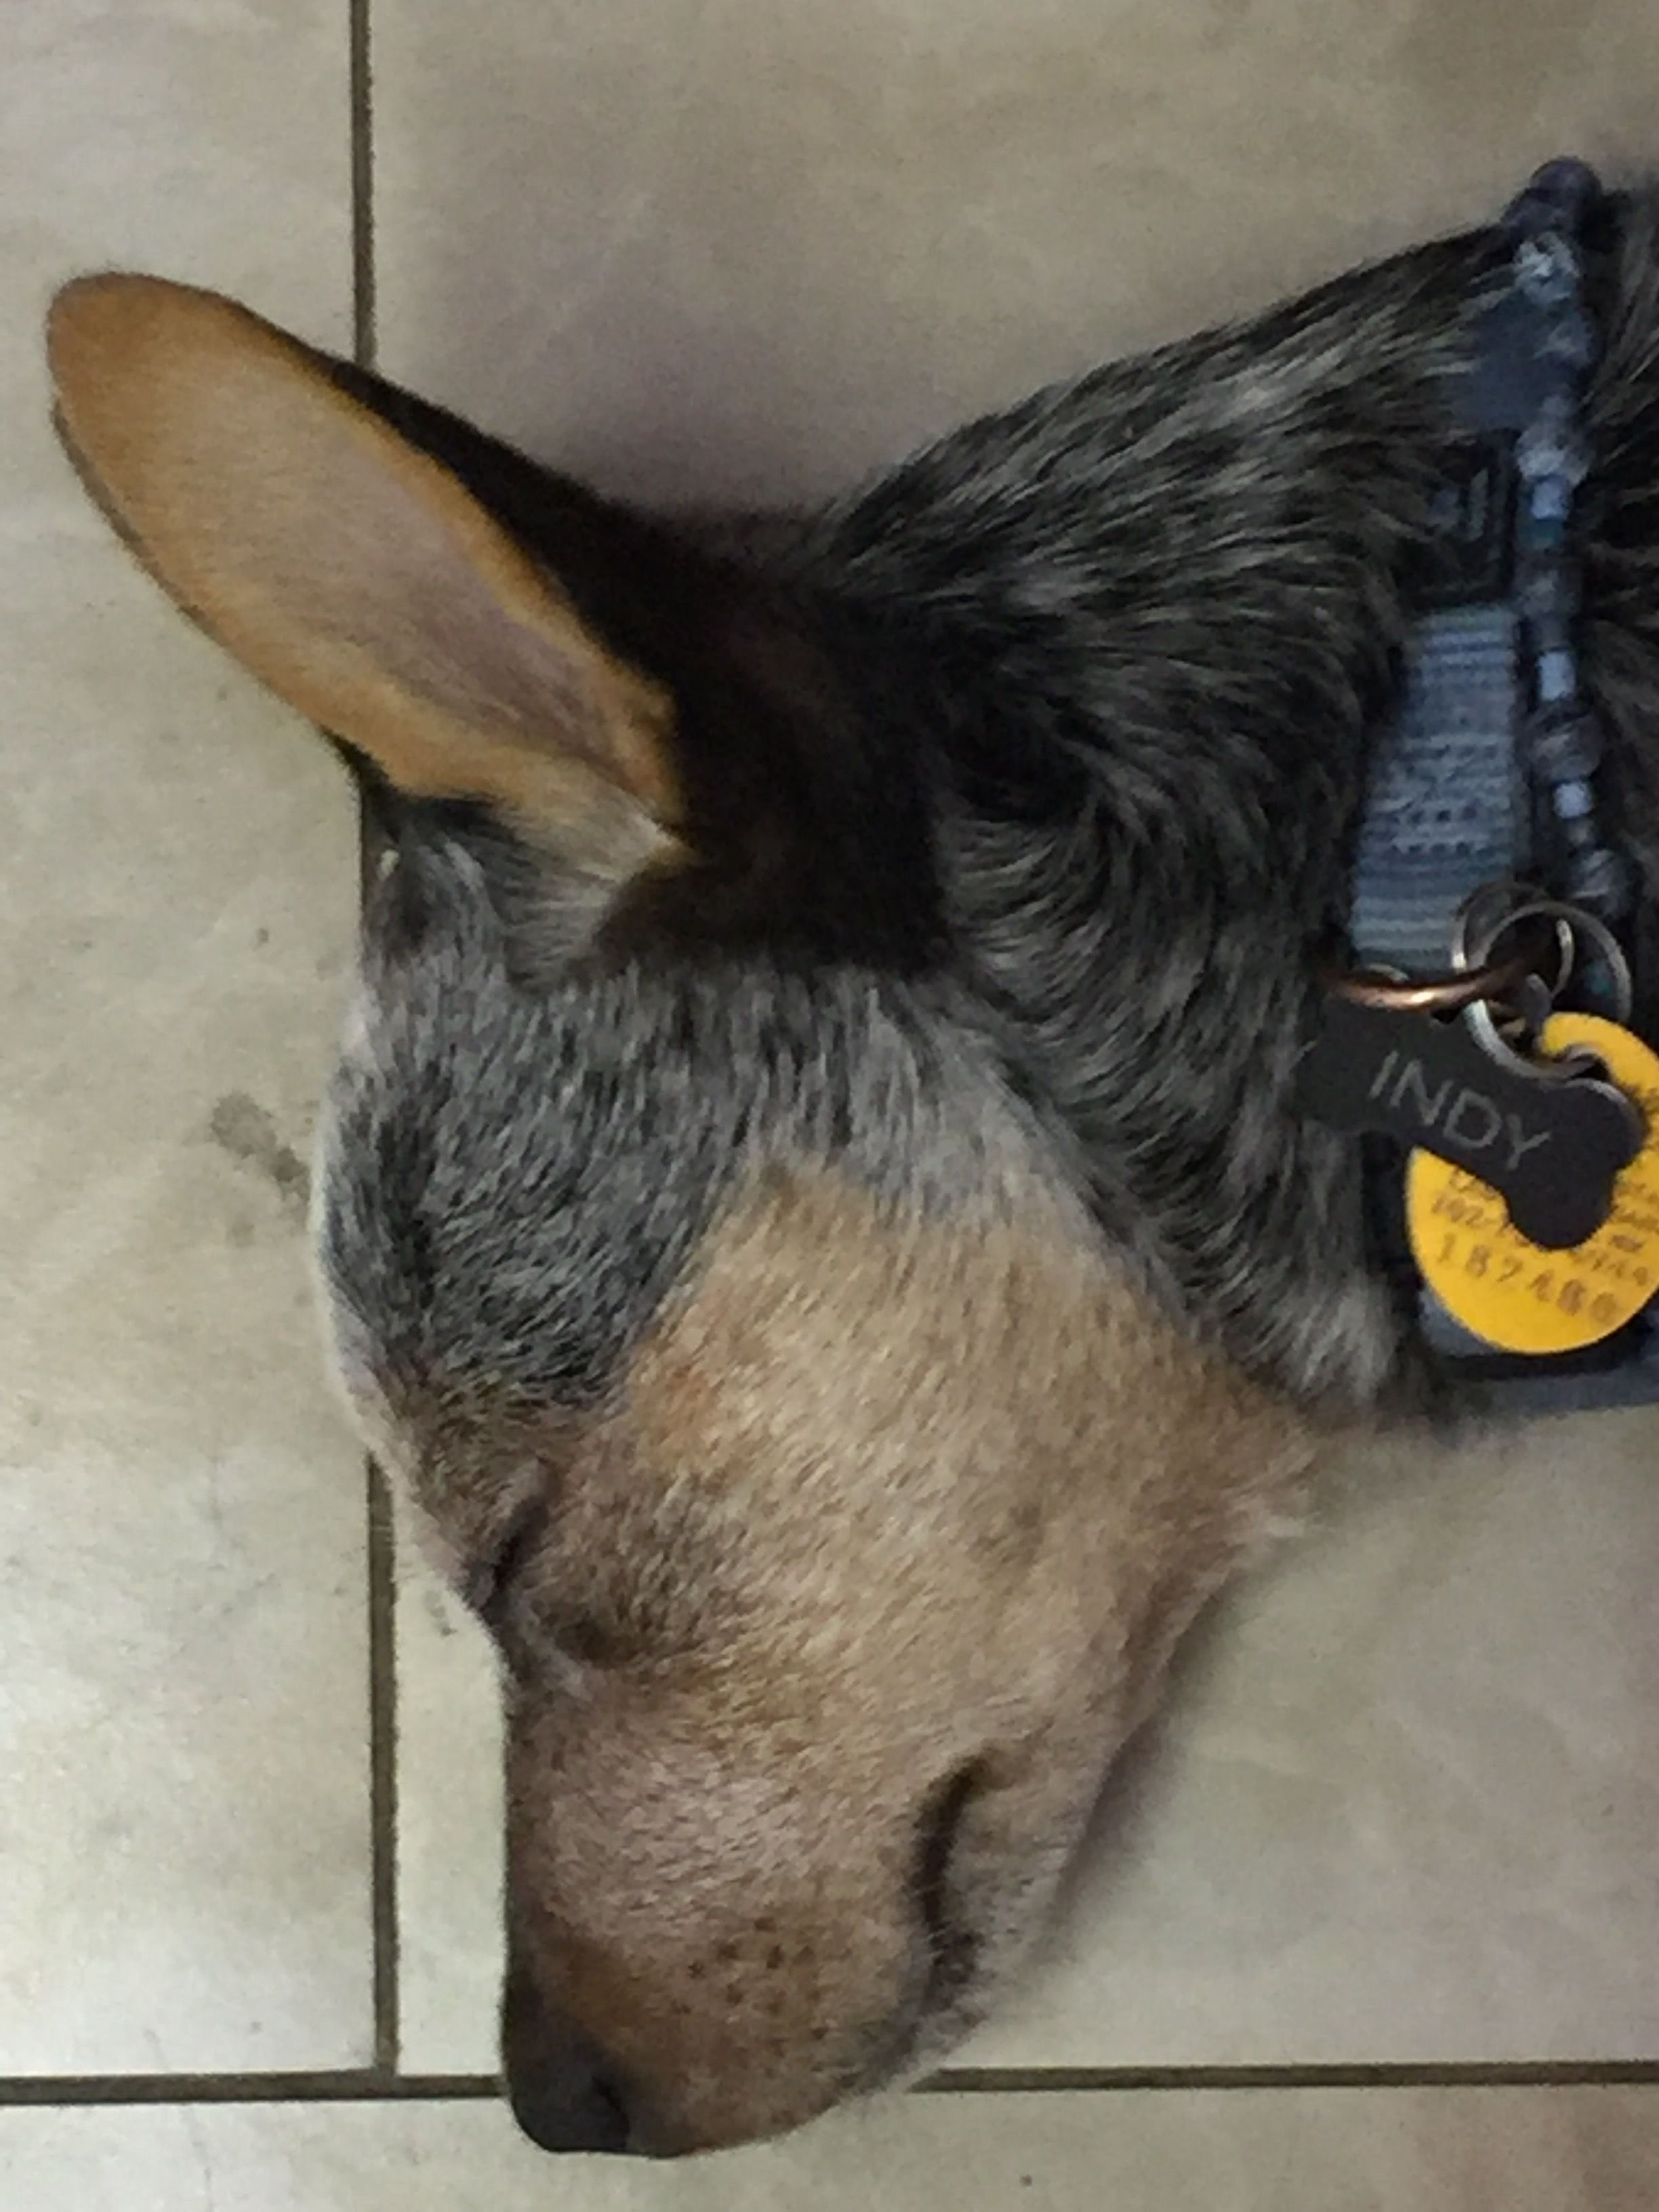 Pin by Kim wilson on Indy and Ziggy | Australian cattle dog